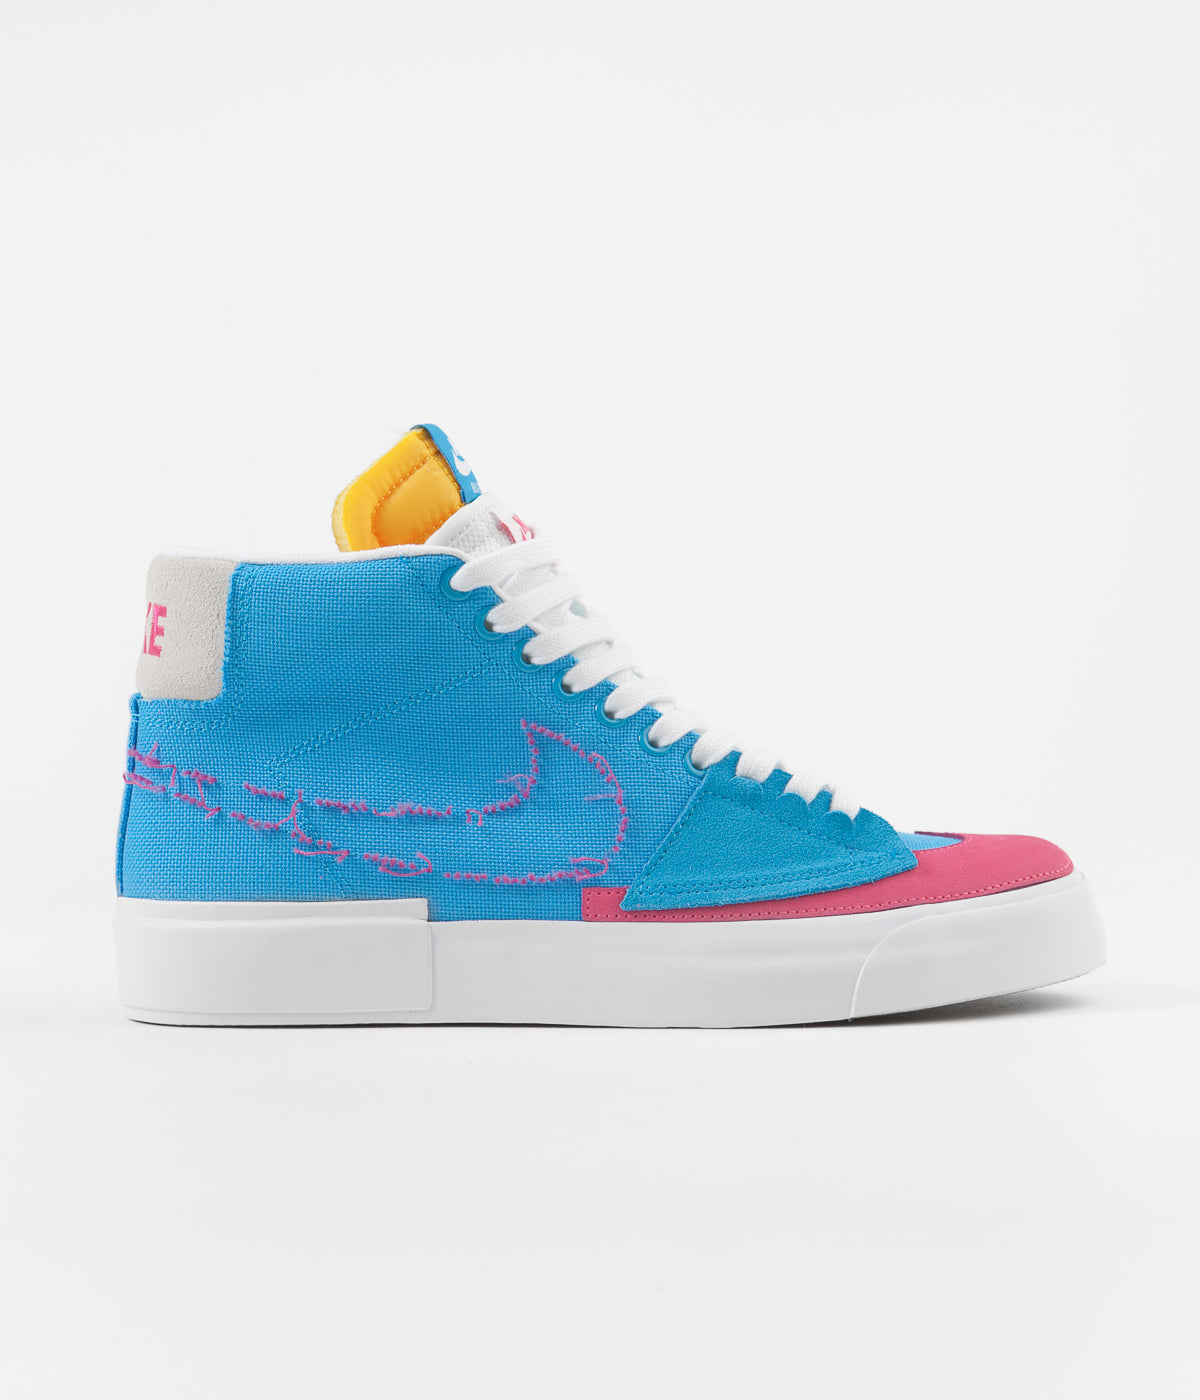 Nike SB Blazer Mid Edge Shoes - Laser Blue / Watermelon - University Gold